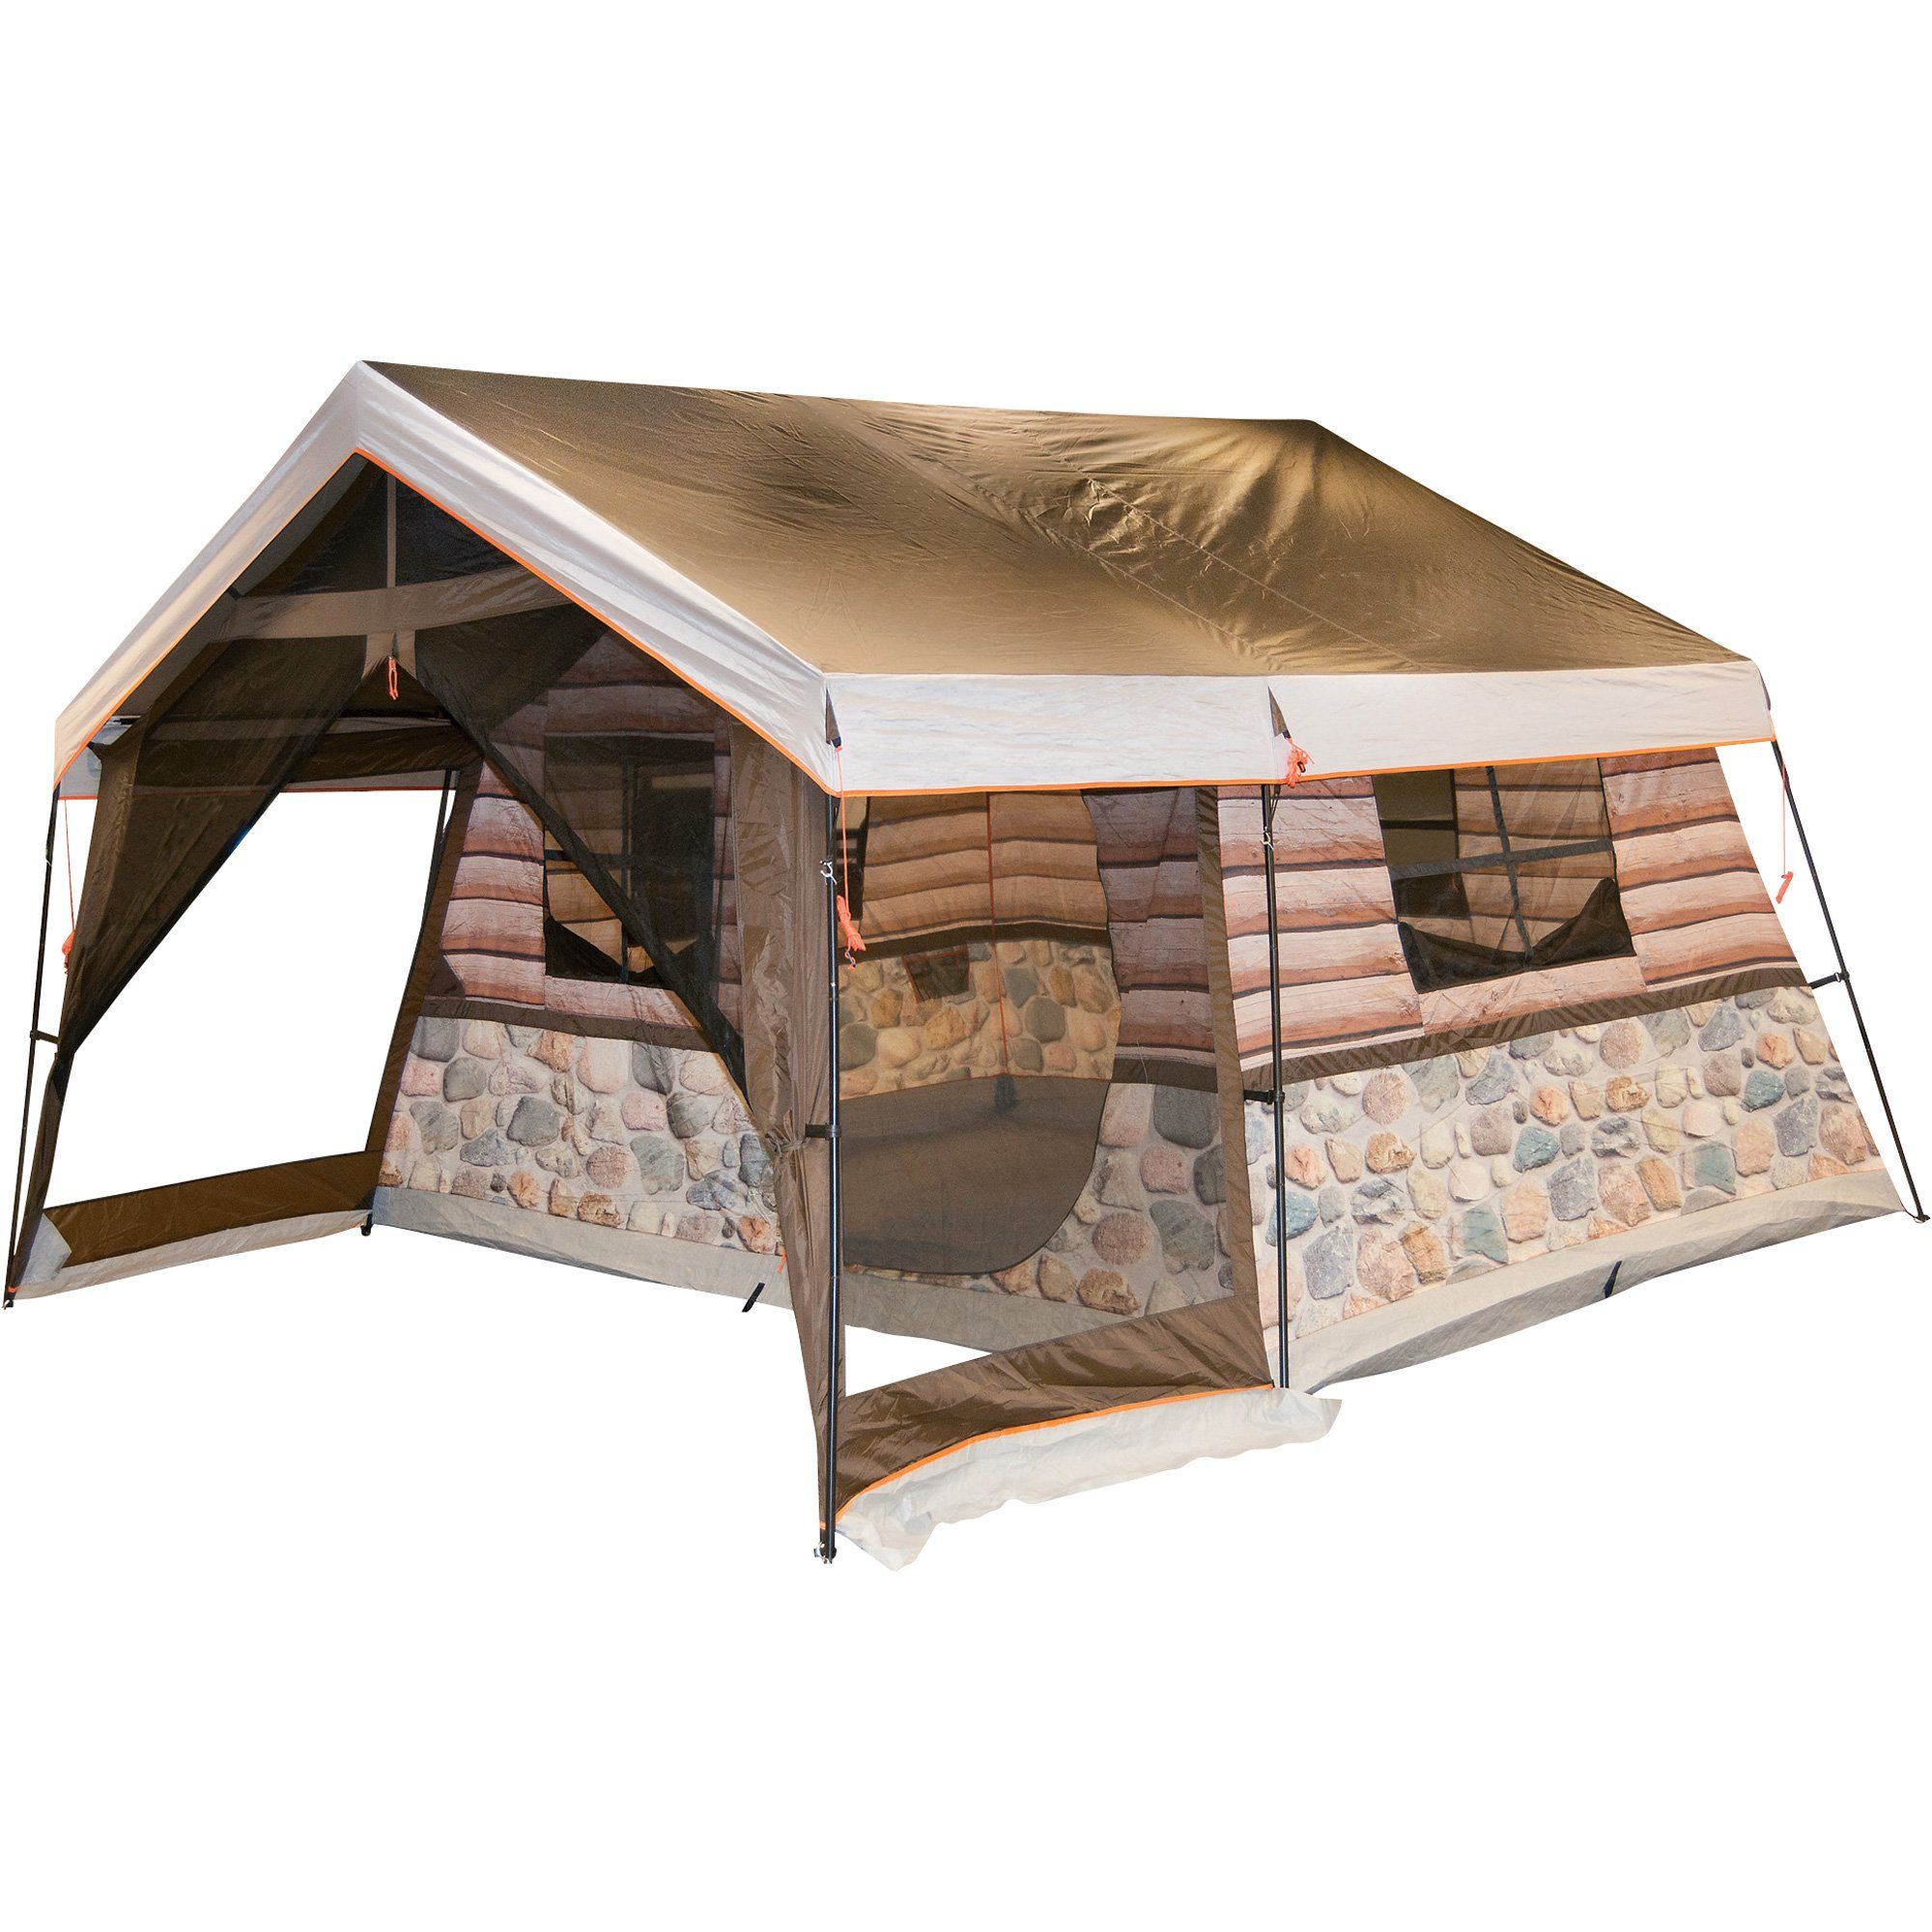 Timber Ridge 8-Man Log Cabin Tent  sc 1 st  Pinterest : timber ridge tent - memphite.com